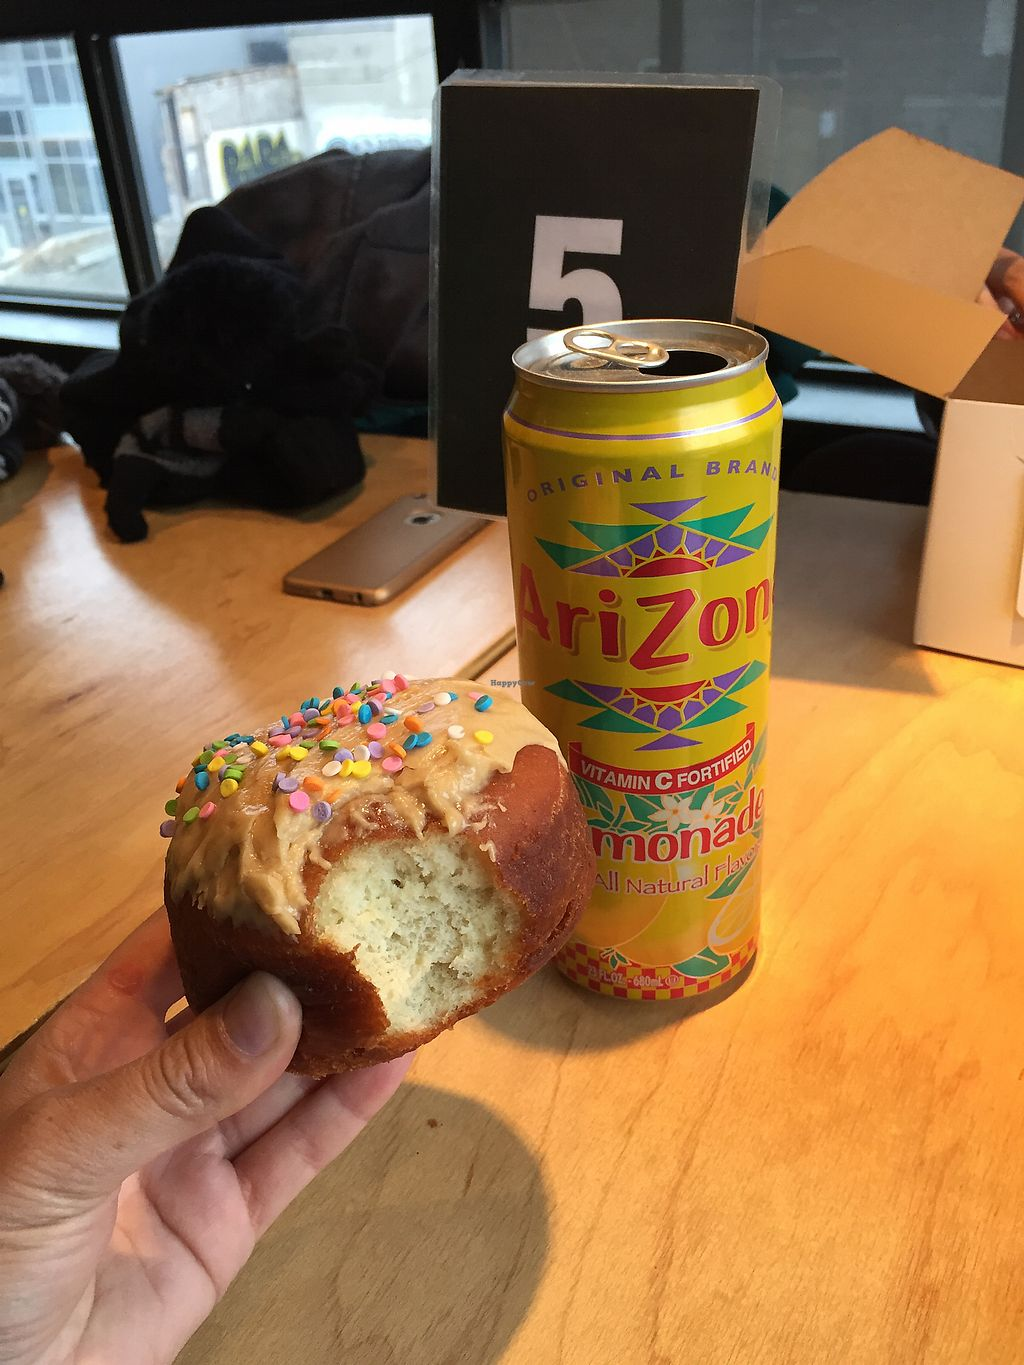 """Photo of Apiecalypse Now Pizza and Snack Bar  by <a href=""""/members/profile/laurdanielle"""" class=""""title__title"""" title=""""Profile of member laurdanielle"""">laurdanielle</a> <br/>Peanut butter donut and lemonade <br/> December 24, 2017  - <a href='/contact/abuse/image/58573/338703'>Report</a>"""